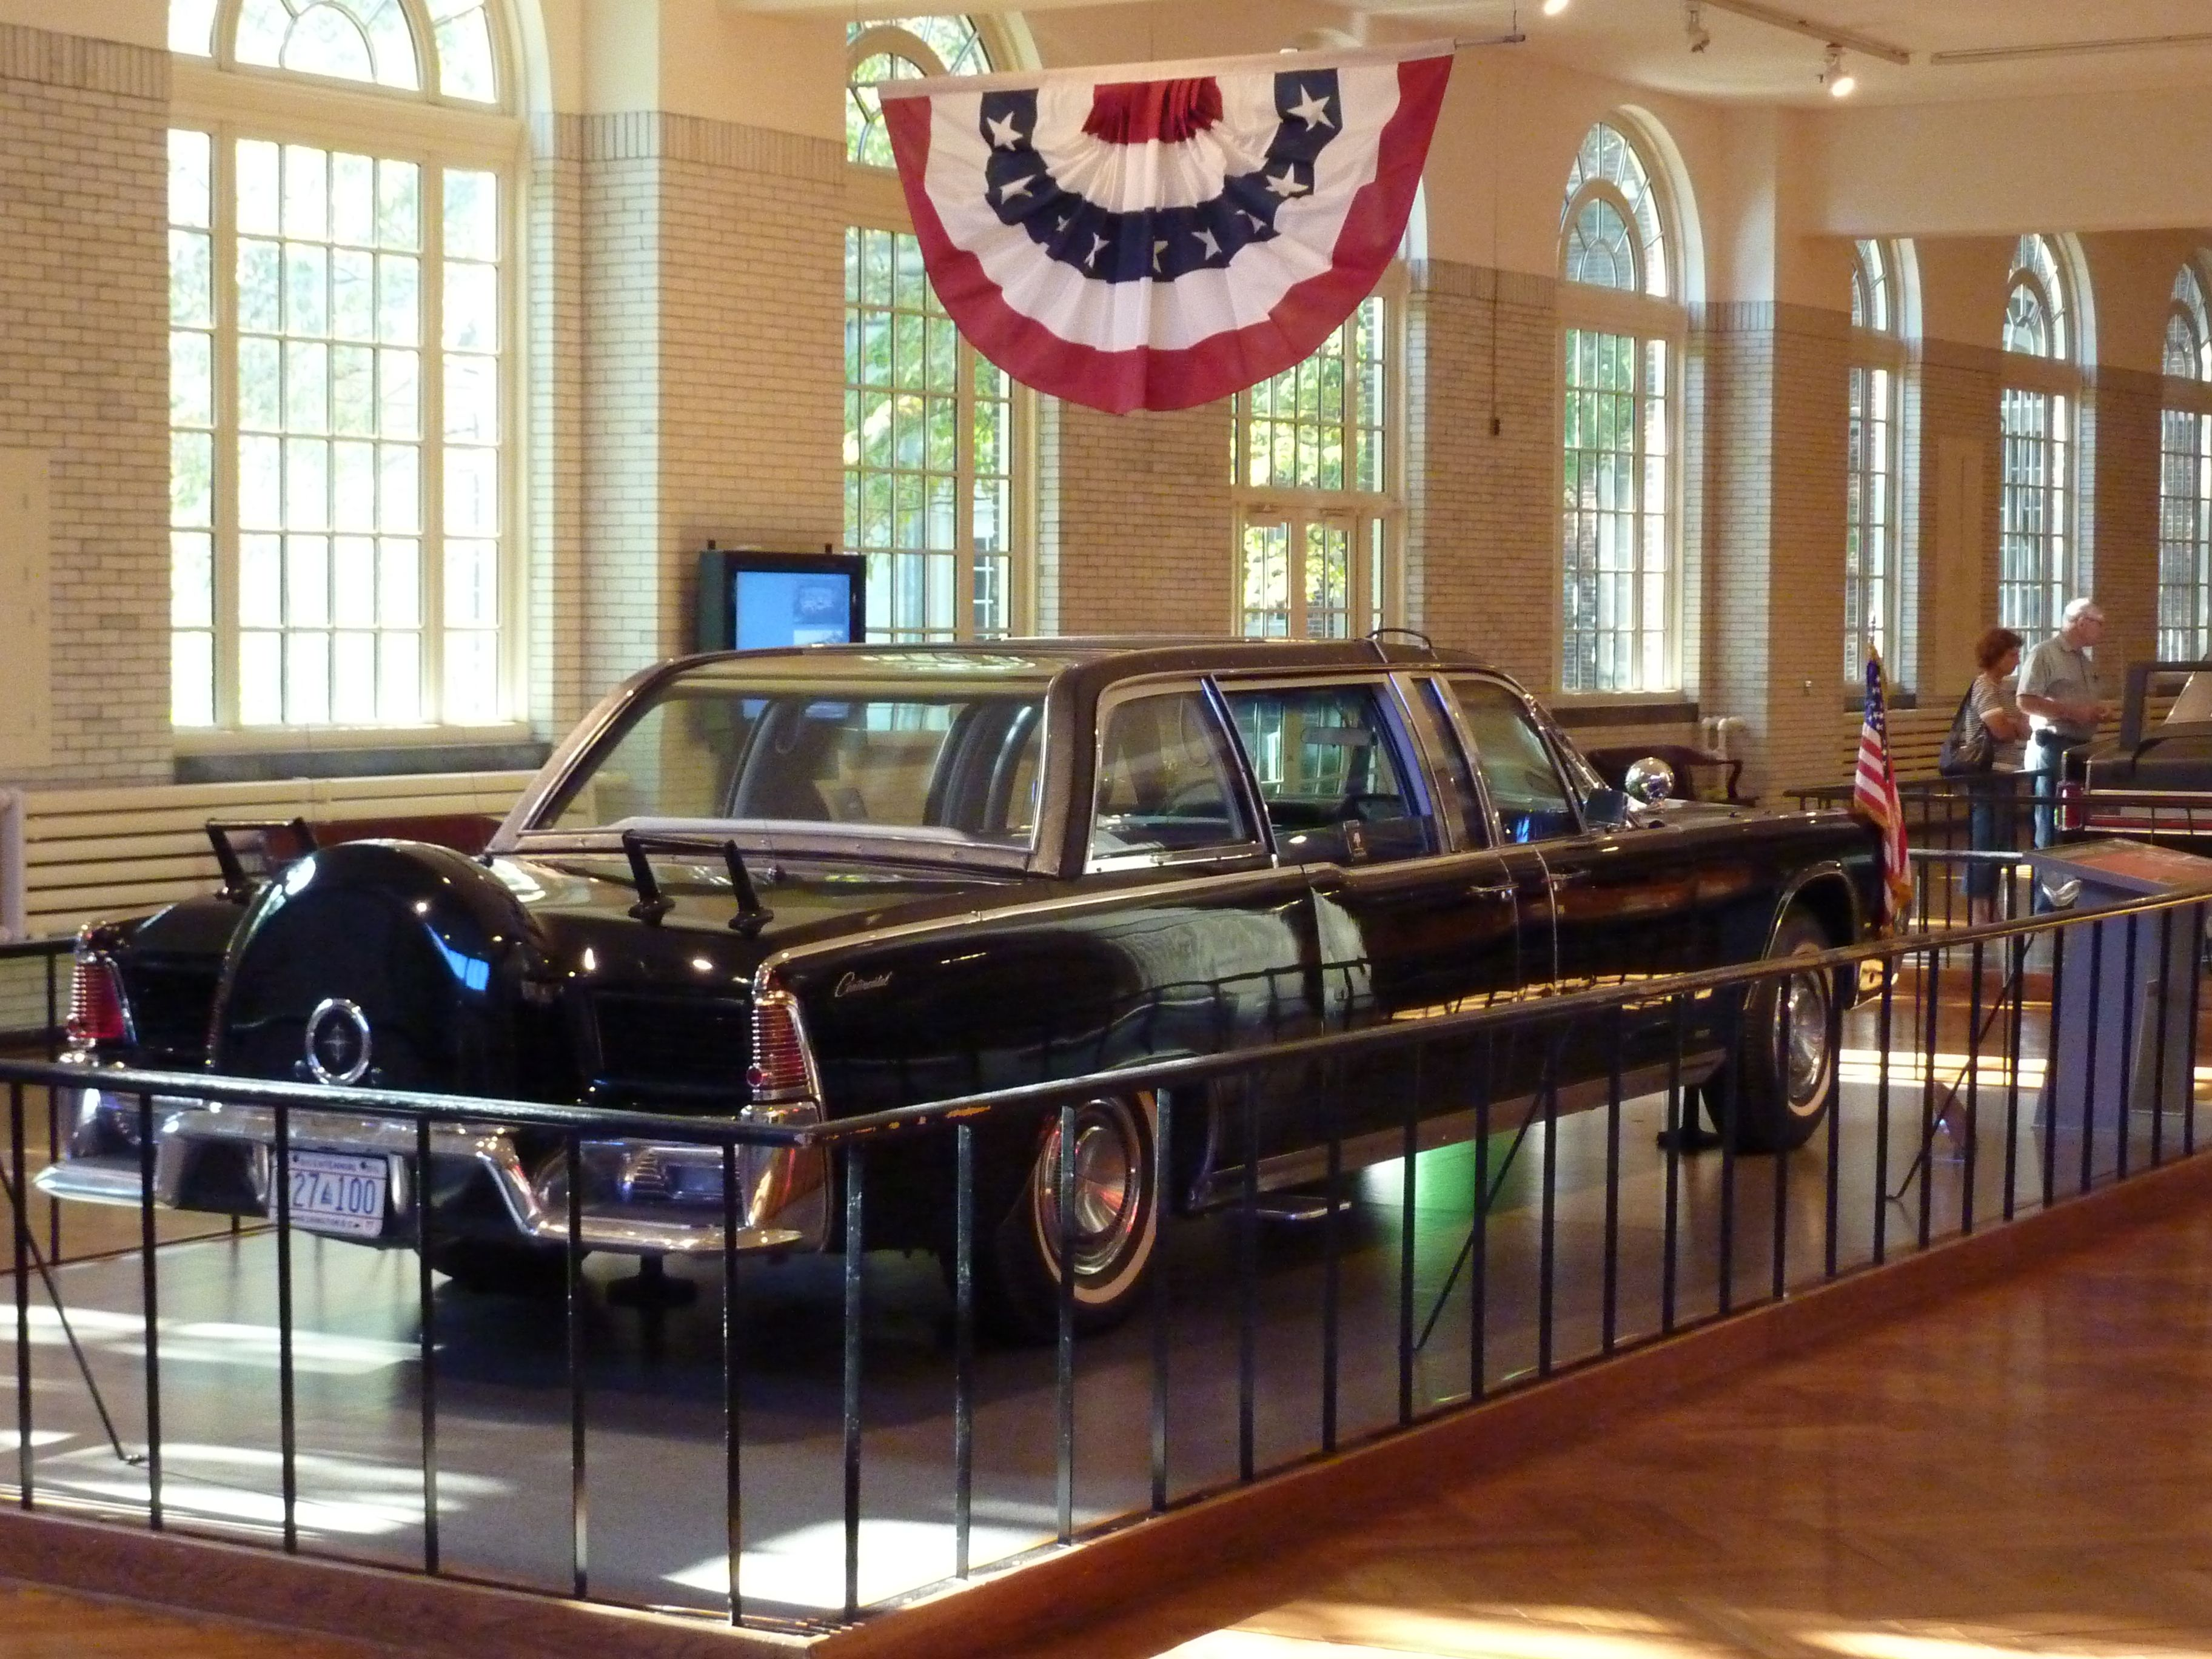 Kennedy s Presidential Limousine Dearborn Michigan is the limo in